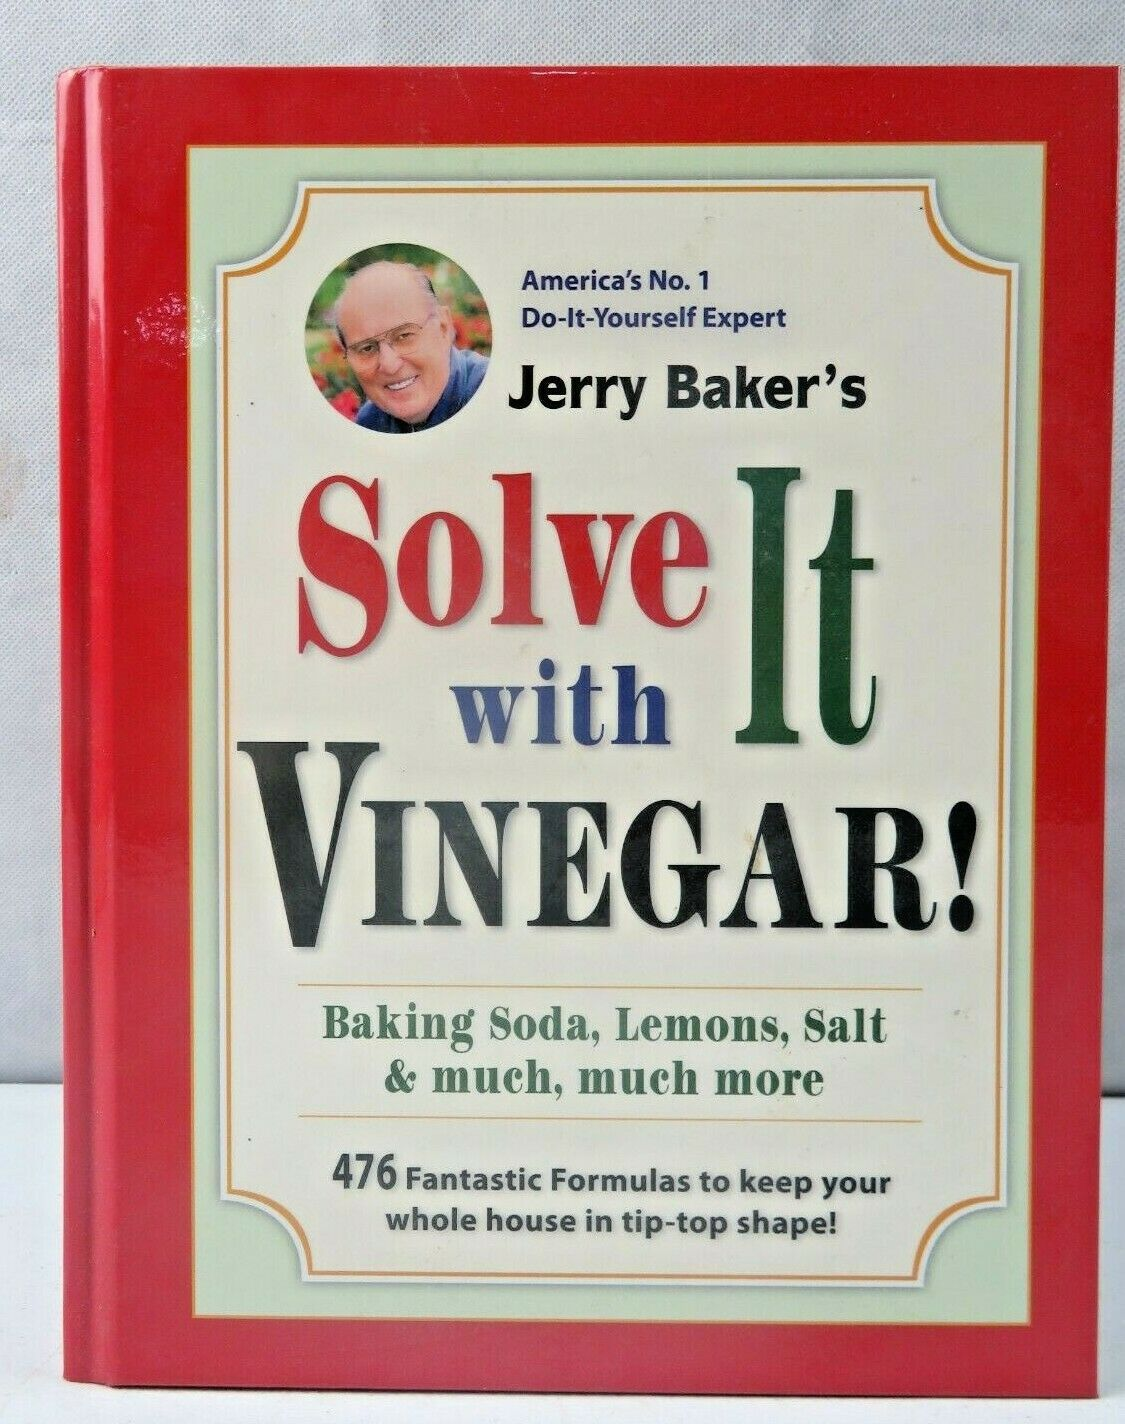 Primary image for Solve It With Vinegar! Baking Soda Lemons Salt & Much More Jerry Baker Book